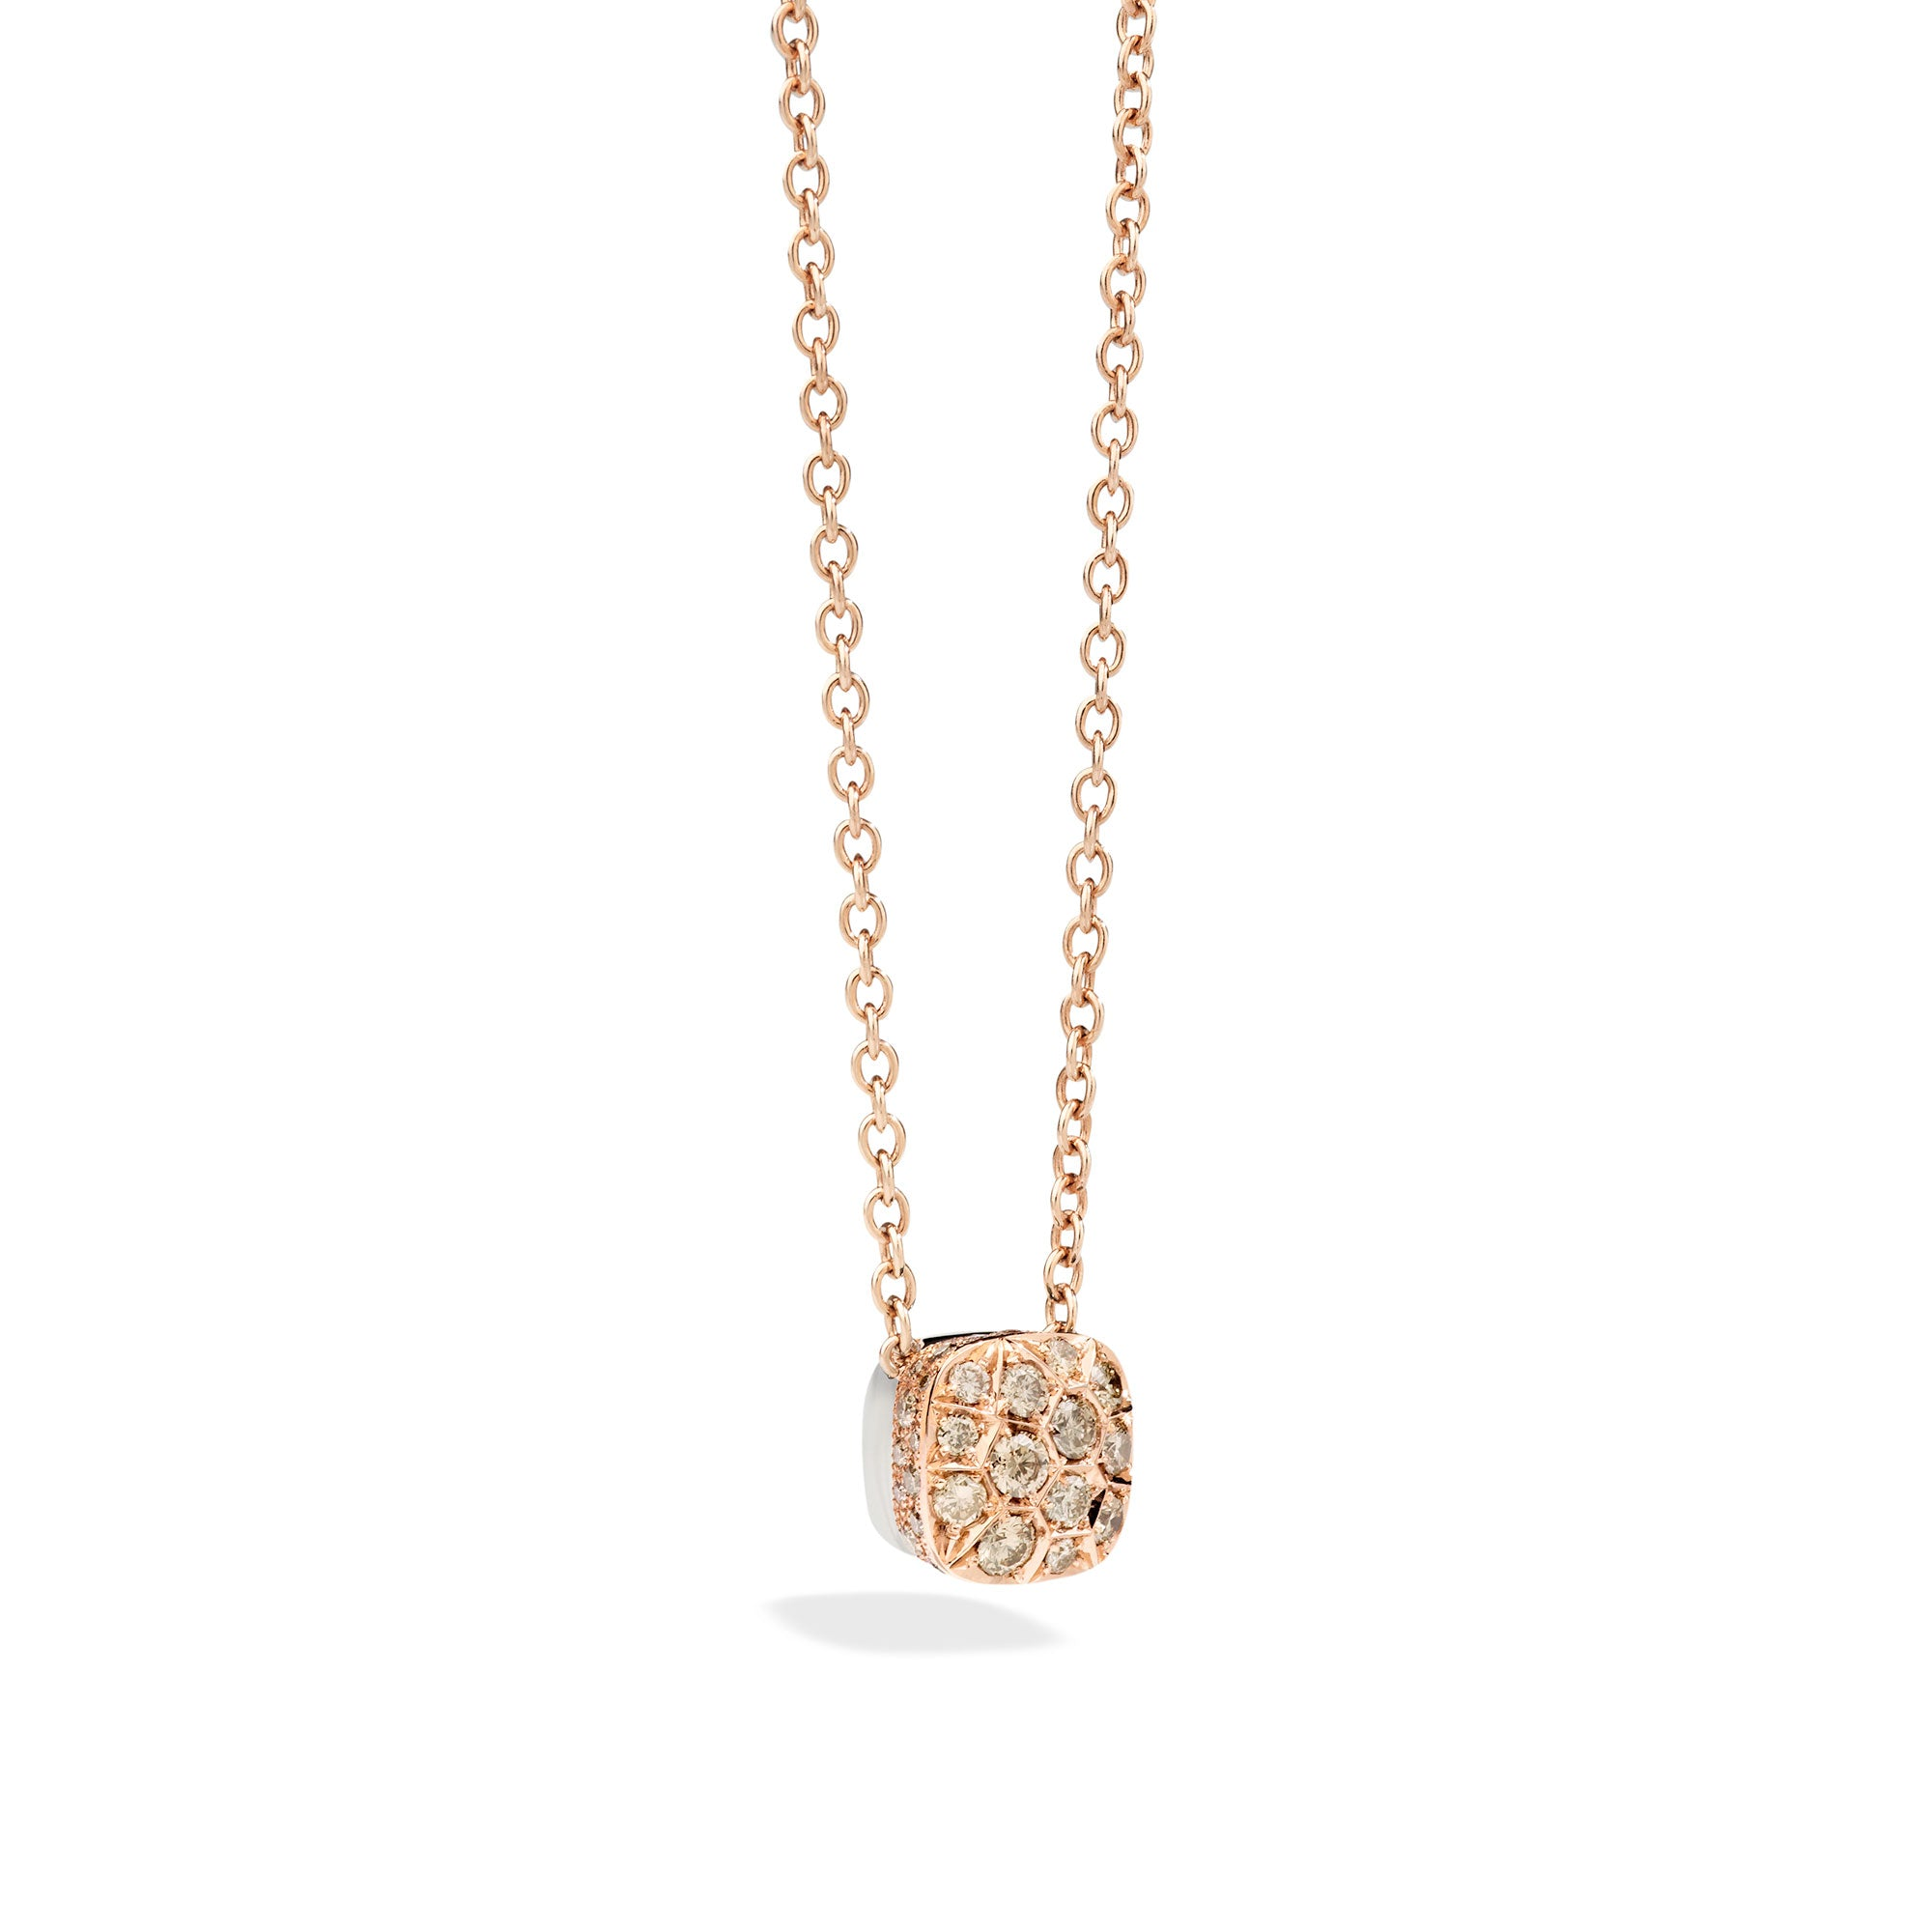 Nudo Necklace with Large Pendant in 18k Rose and White Gold with Brown Diamonds - Orsini Jewellers NZ